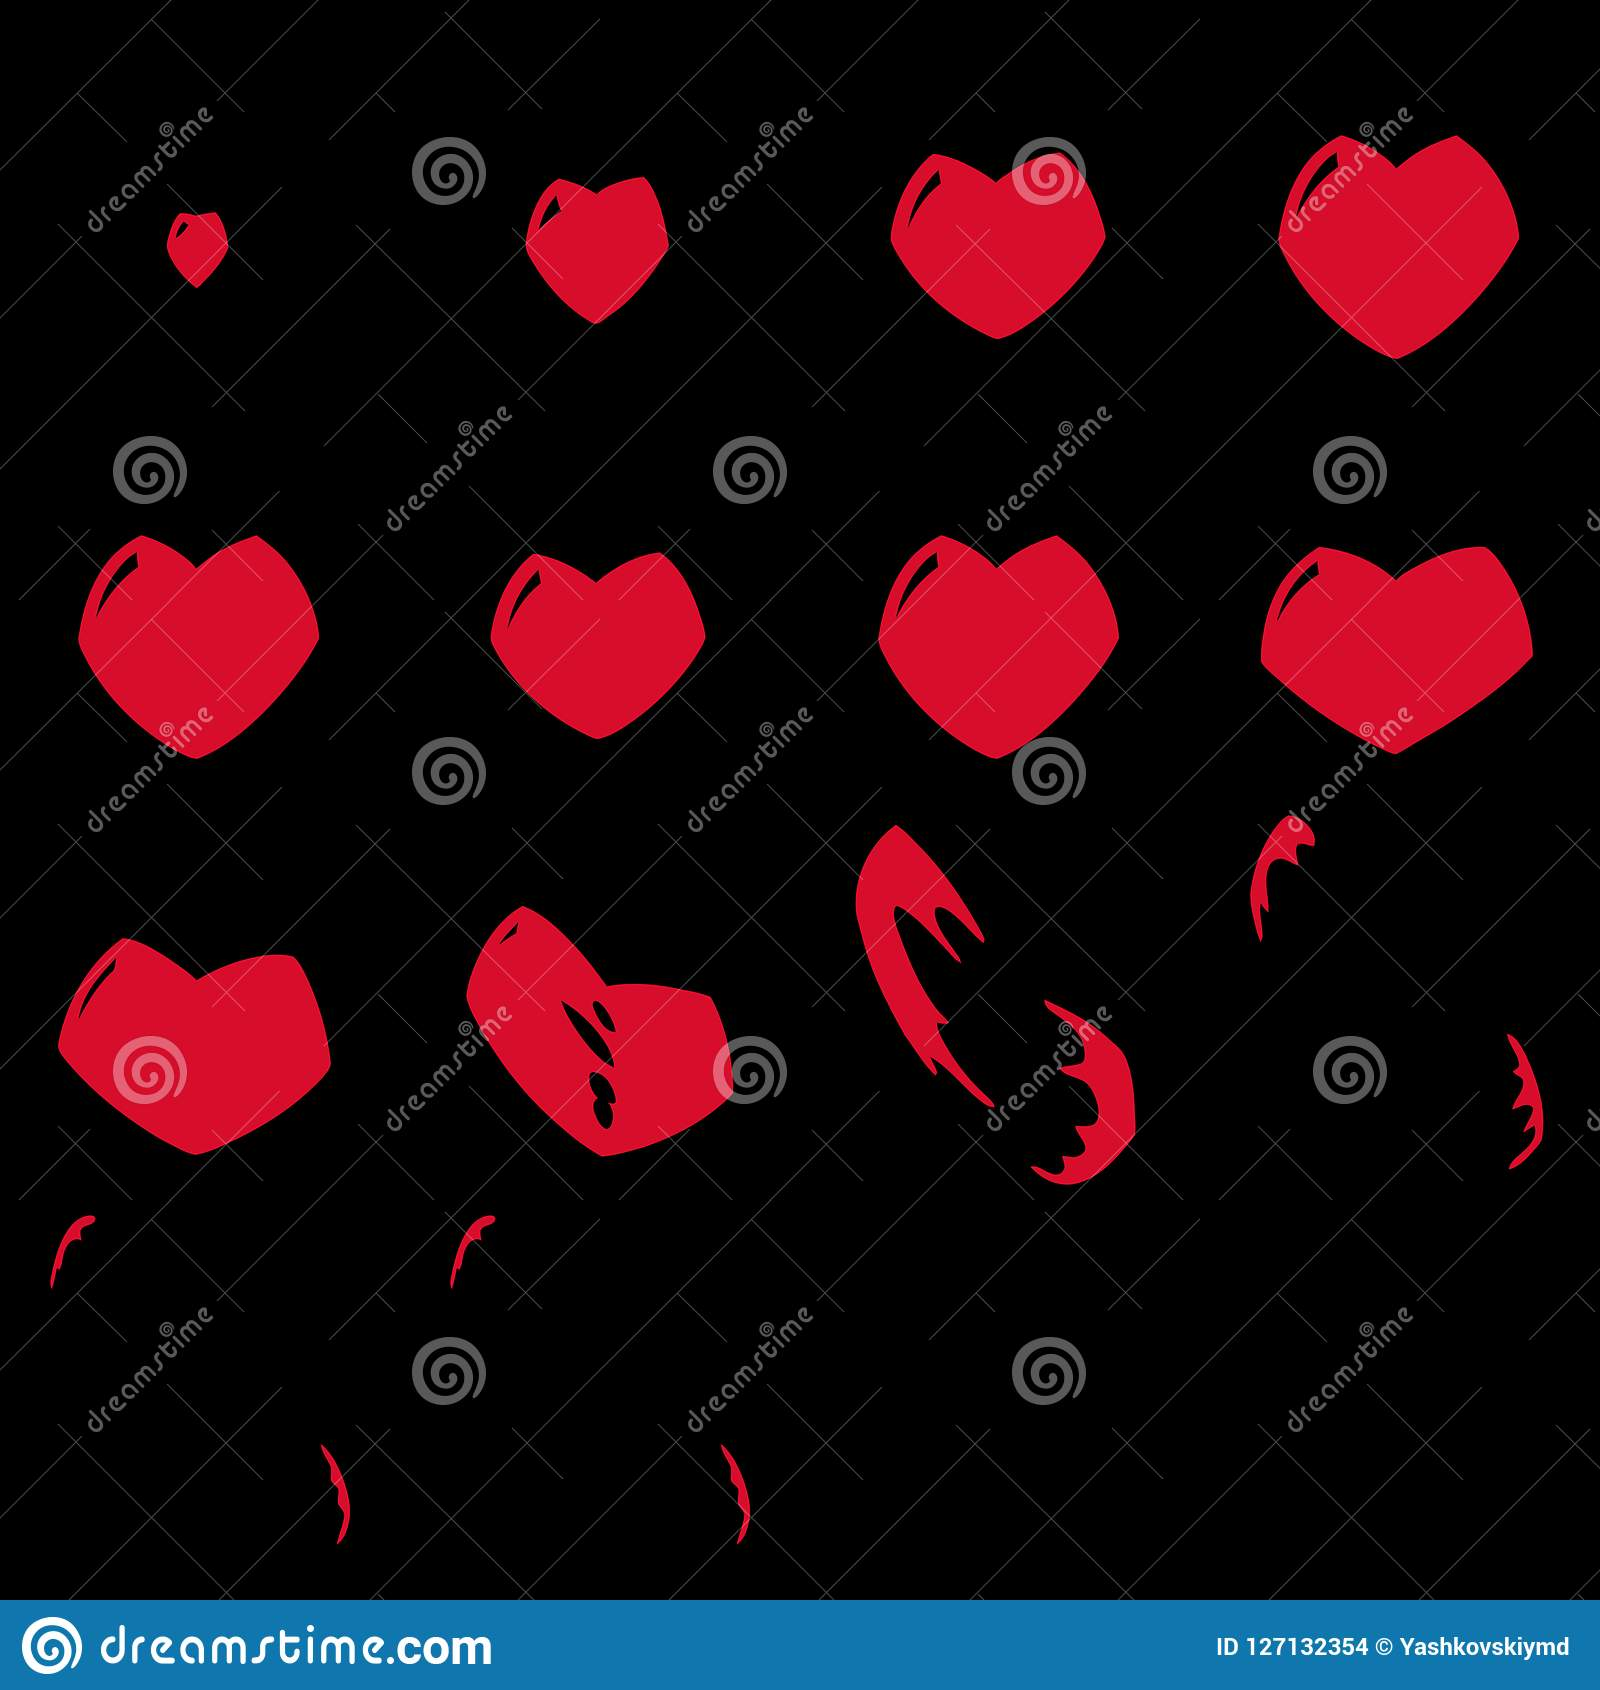 Game Of Love Sheets sprite sheets heart. ready for games or cartoon. stock